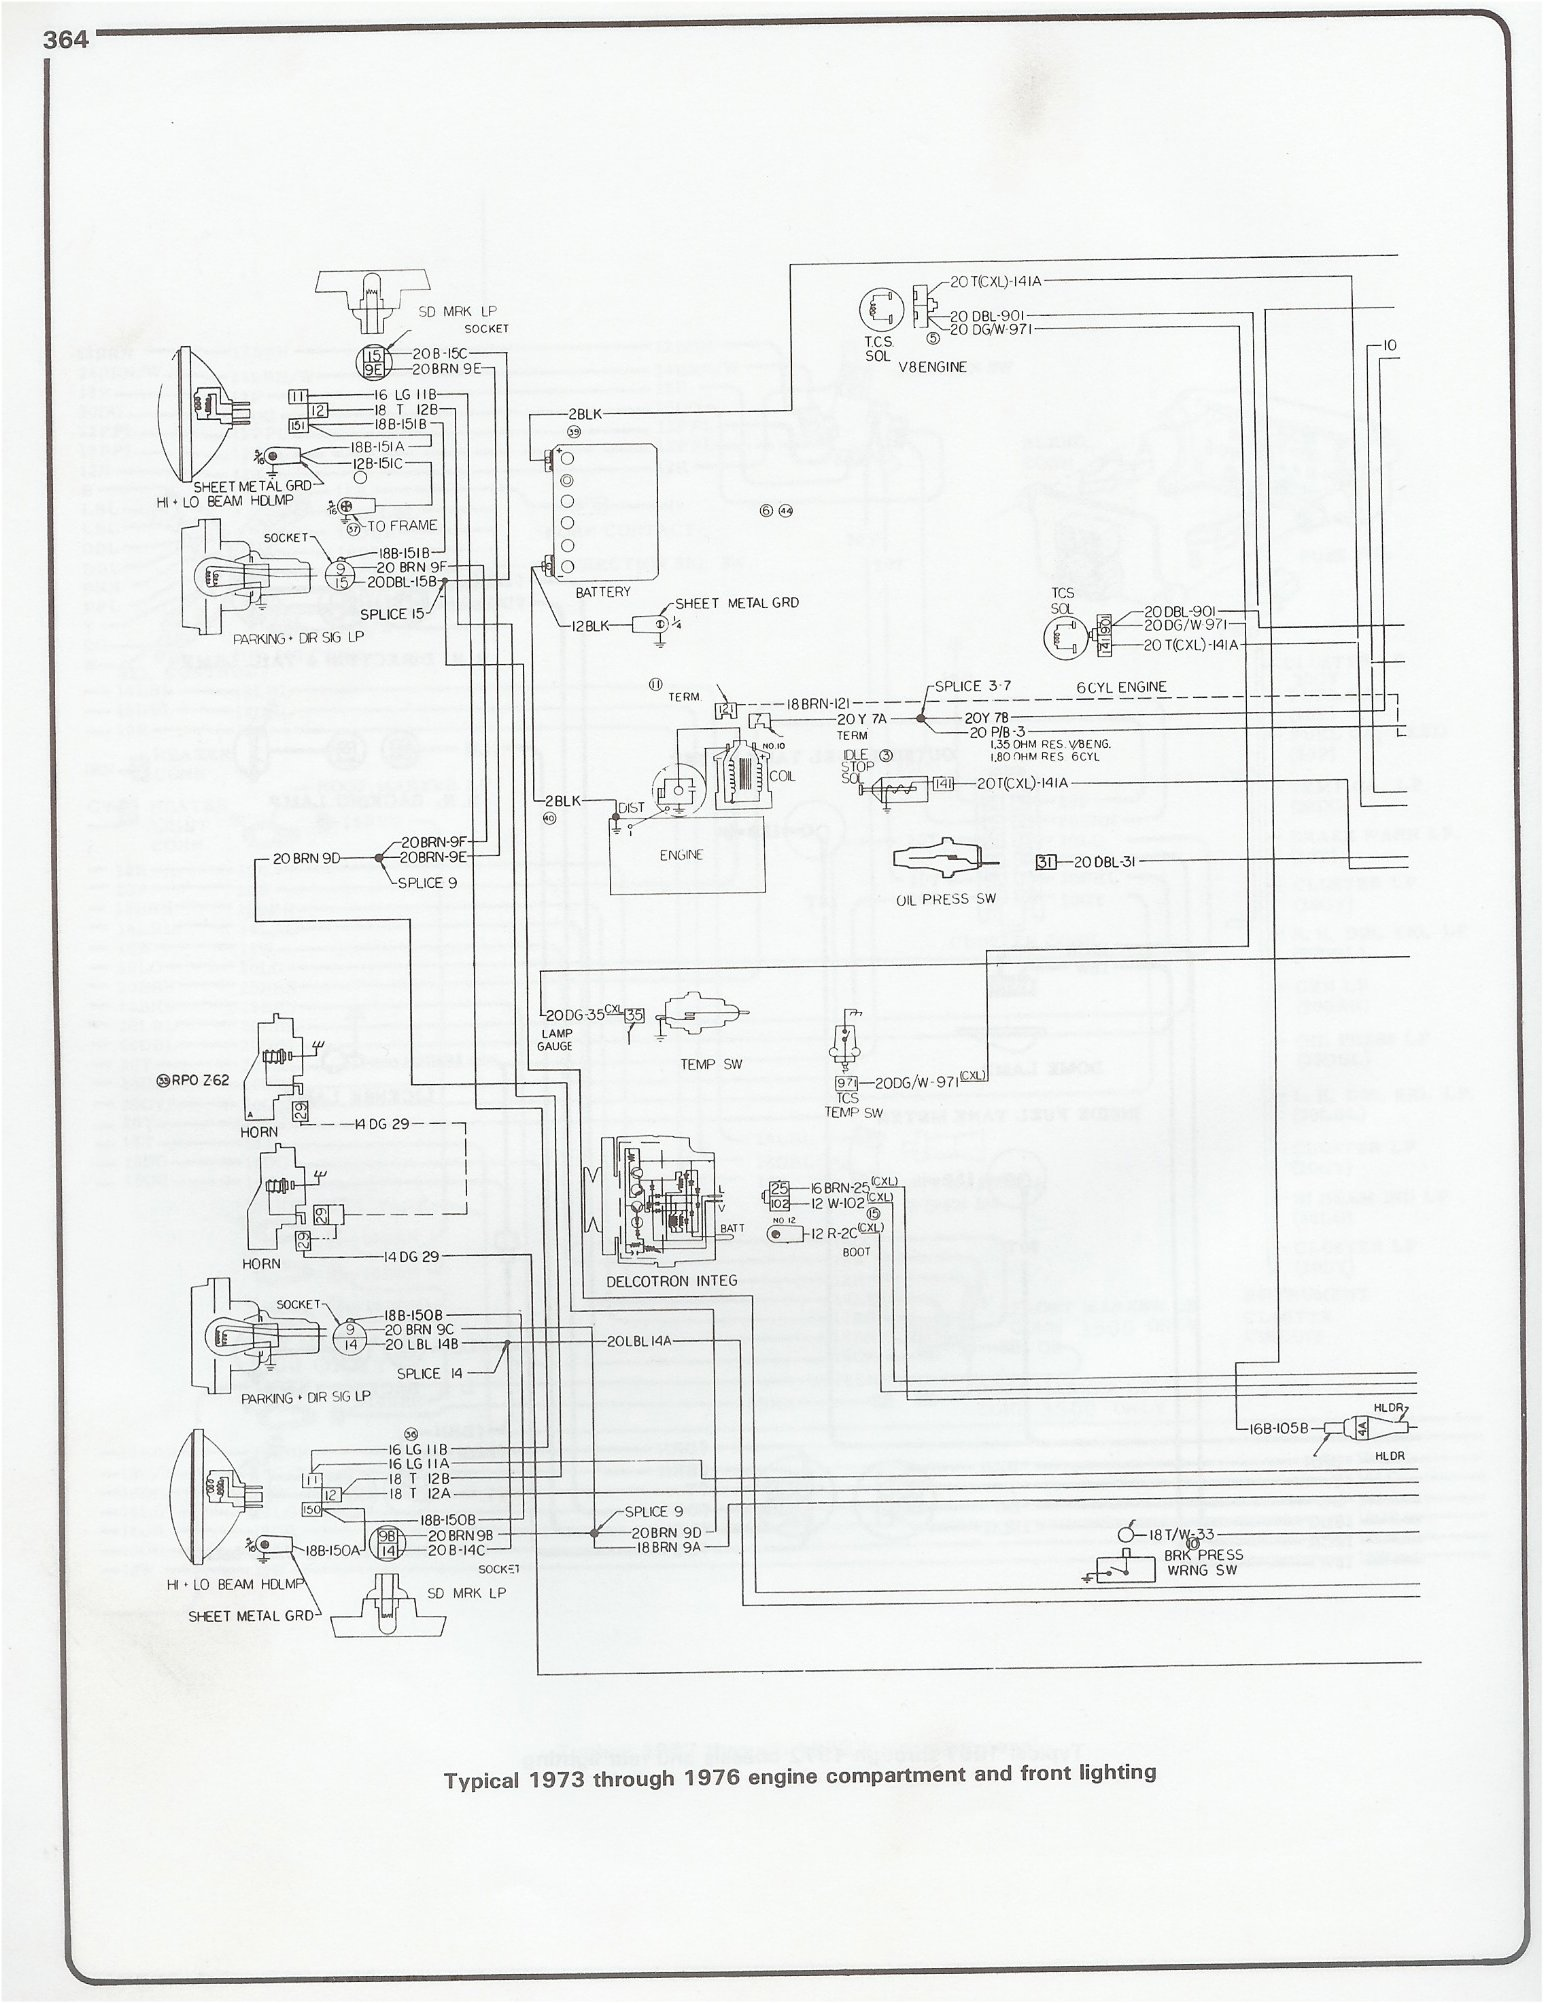 Complete 73 87 Wiring Diagrams Plug Diagram For Truck 76 Engine And Front Lighting